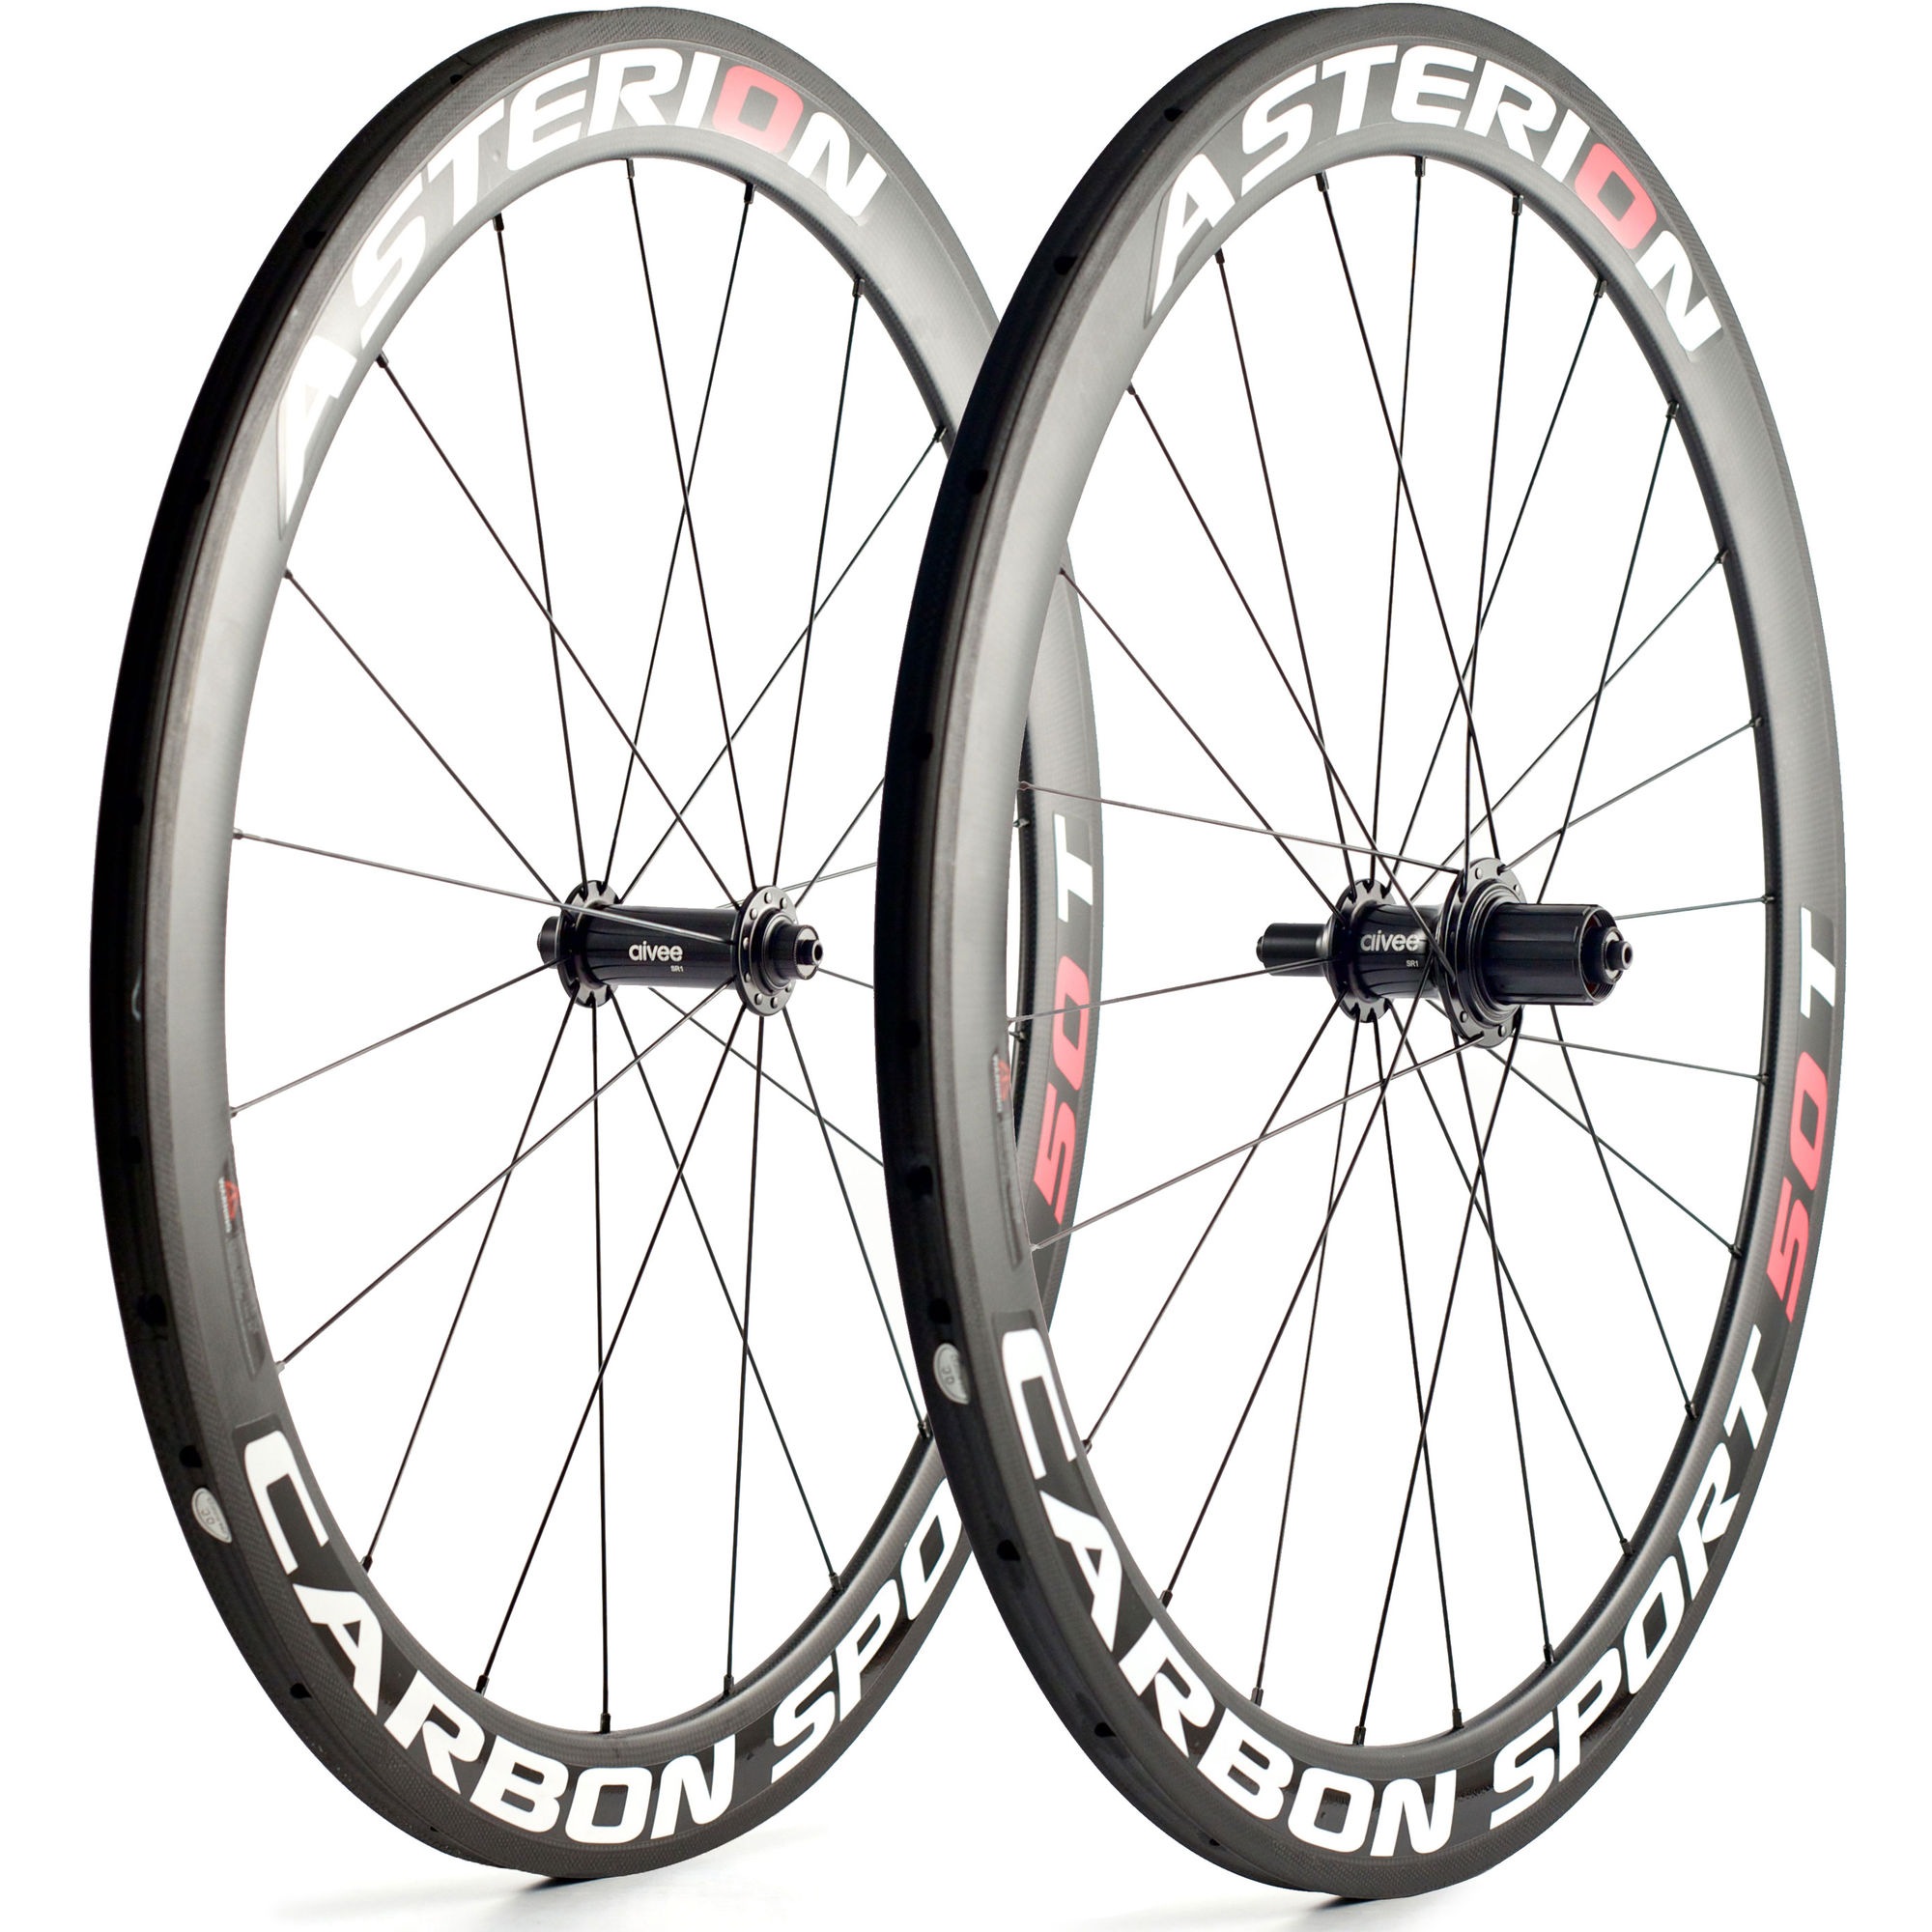 7efd84c915c Road wheels buying guide | Wiggle Guides